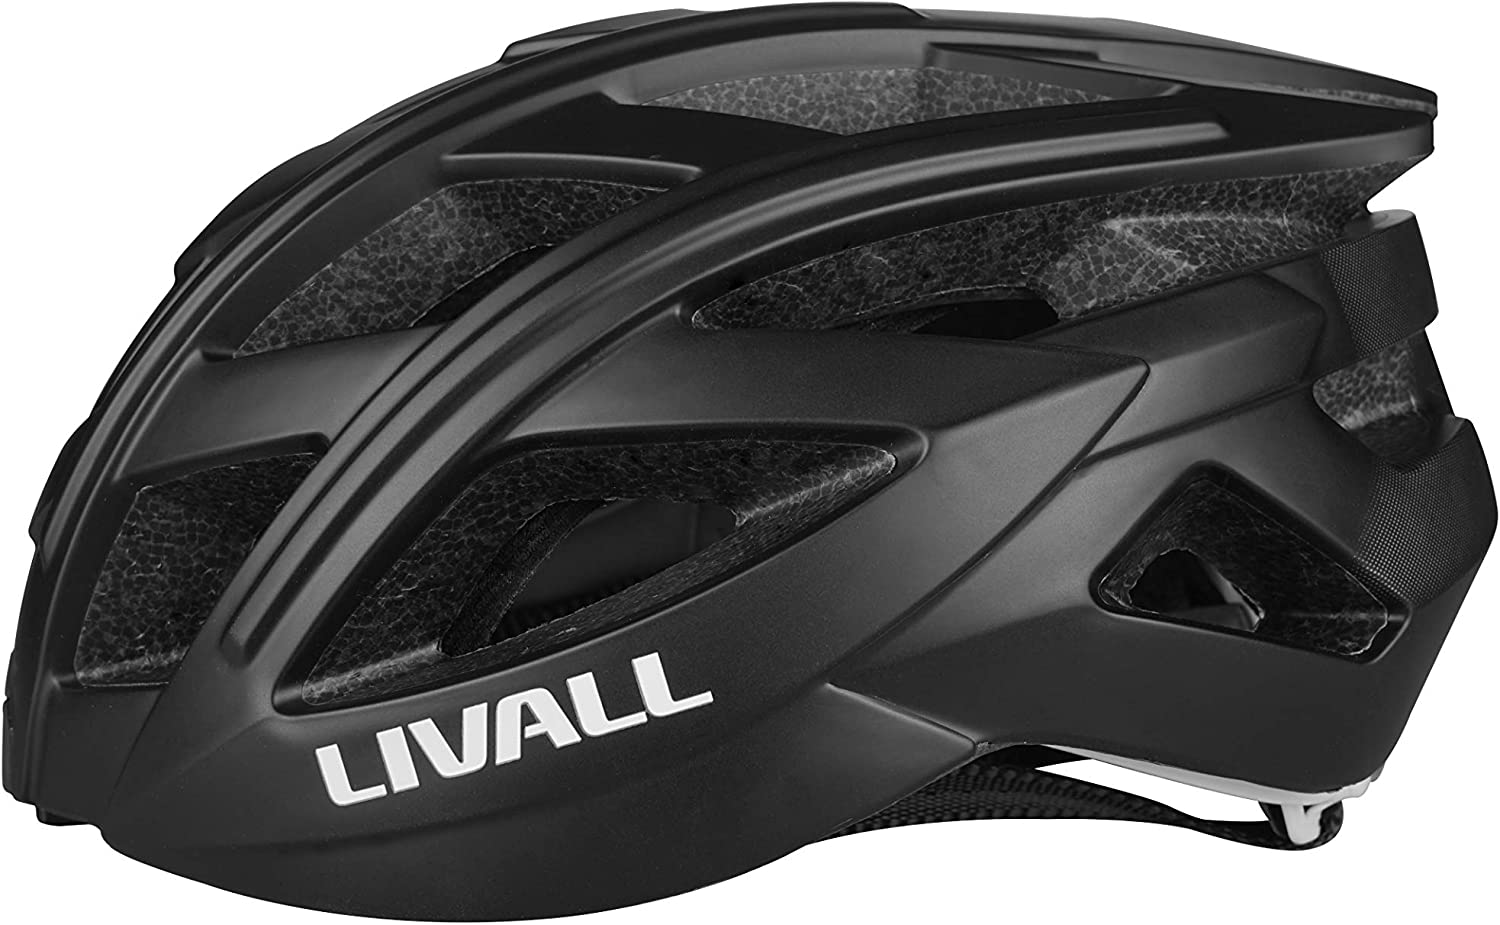 Livall Road Bling Bike Smart blueeetooth Cycling Helmet with LED Light Handsfree BH60SE - Polar Black